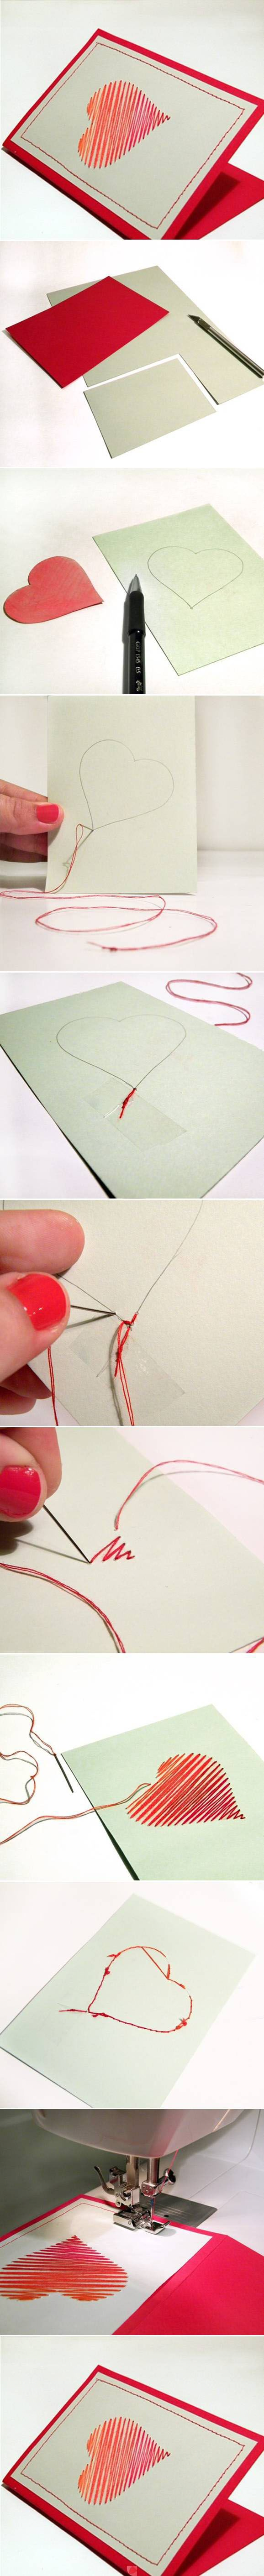 thread/yarn heart cards. could even weave charms on to it. may even try this with xmas trees.